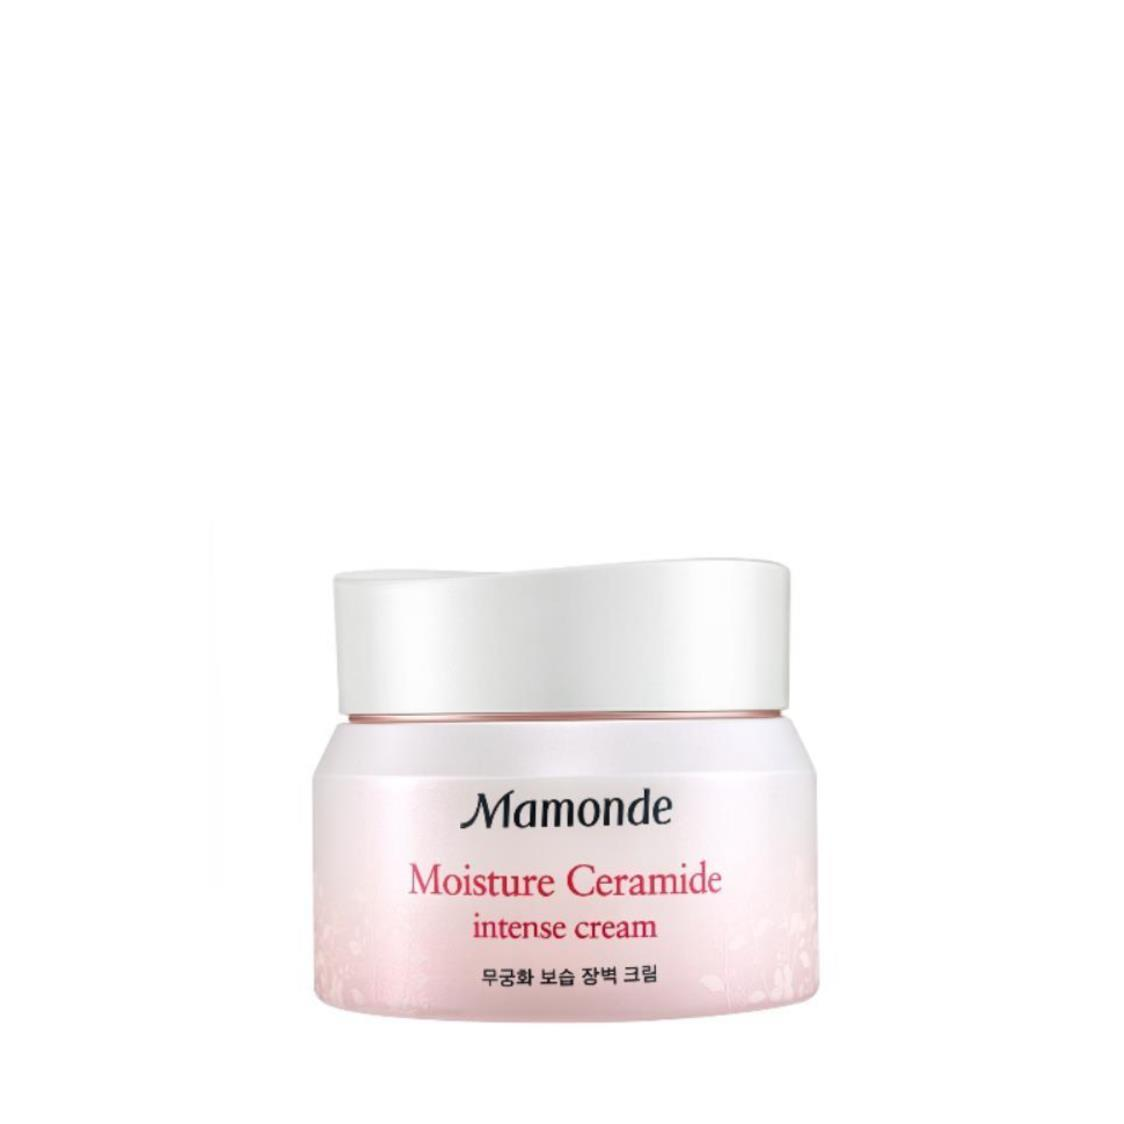 Moisture Ceramide Intense Cream 50ml